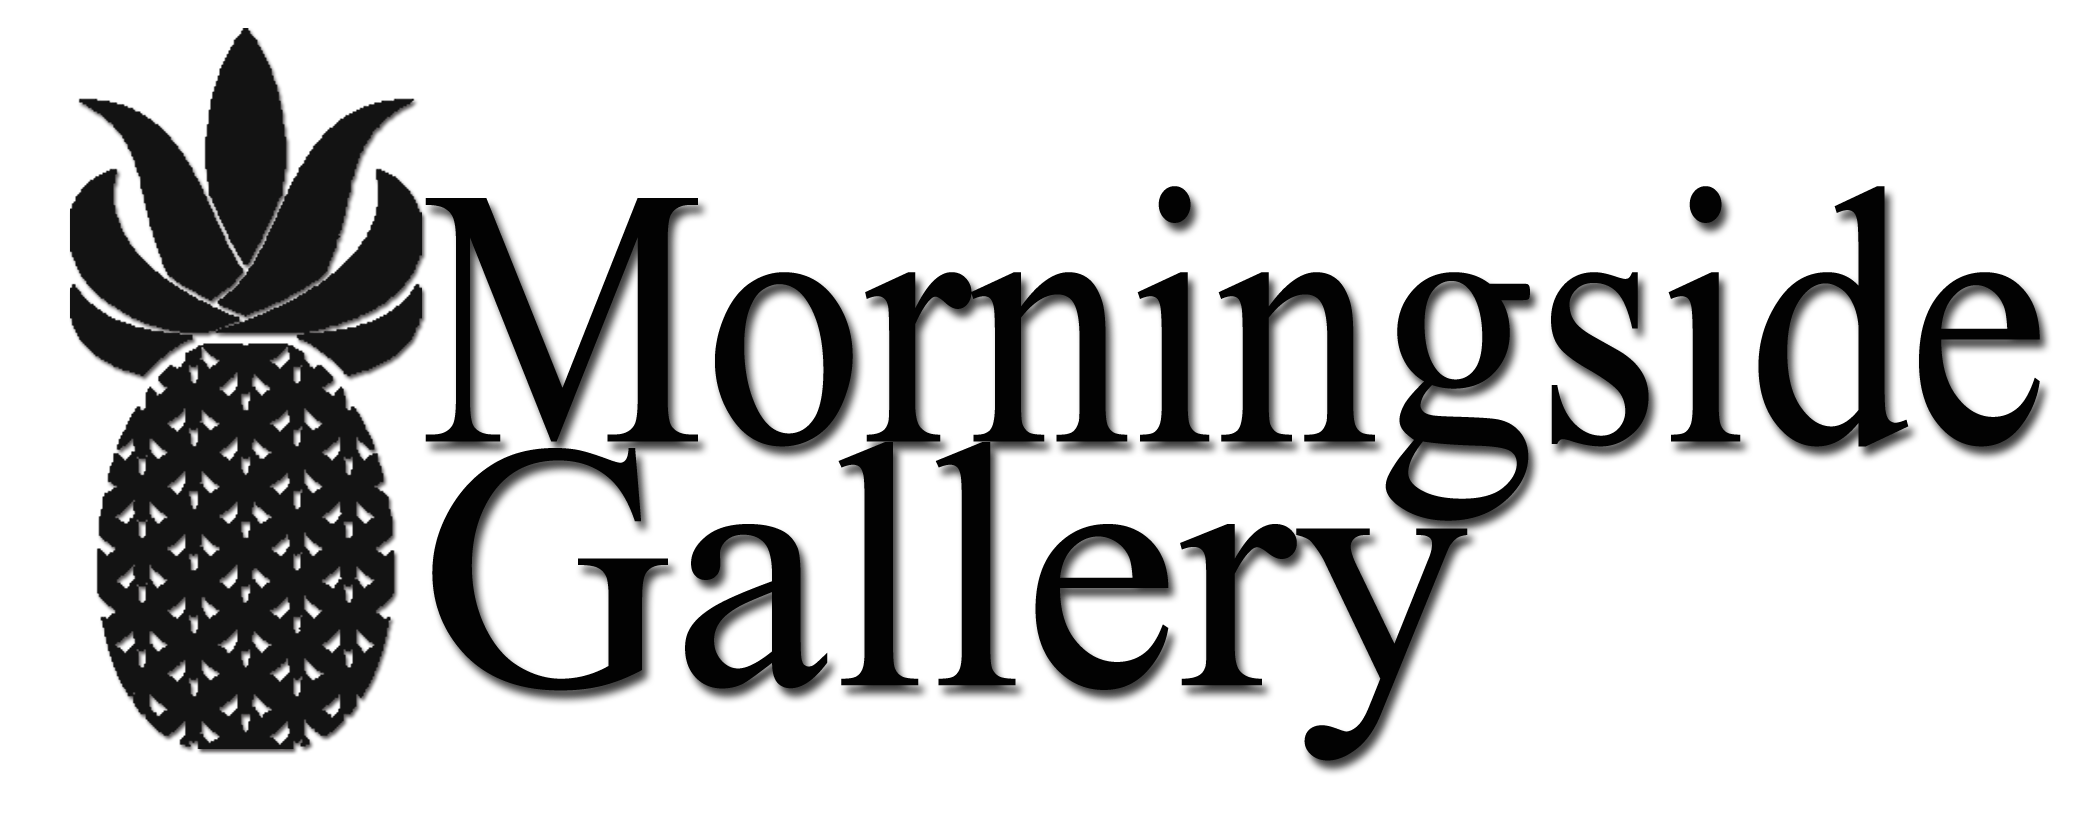 Morningside Gallery Logo in black with a pineapple illustration to the left